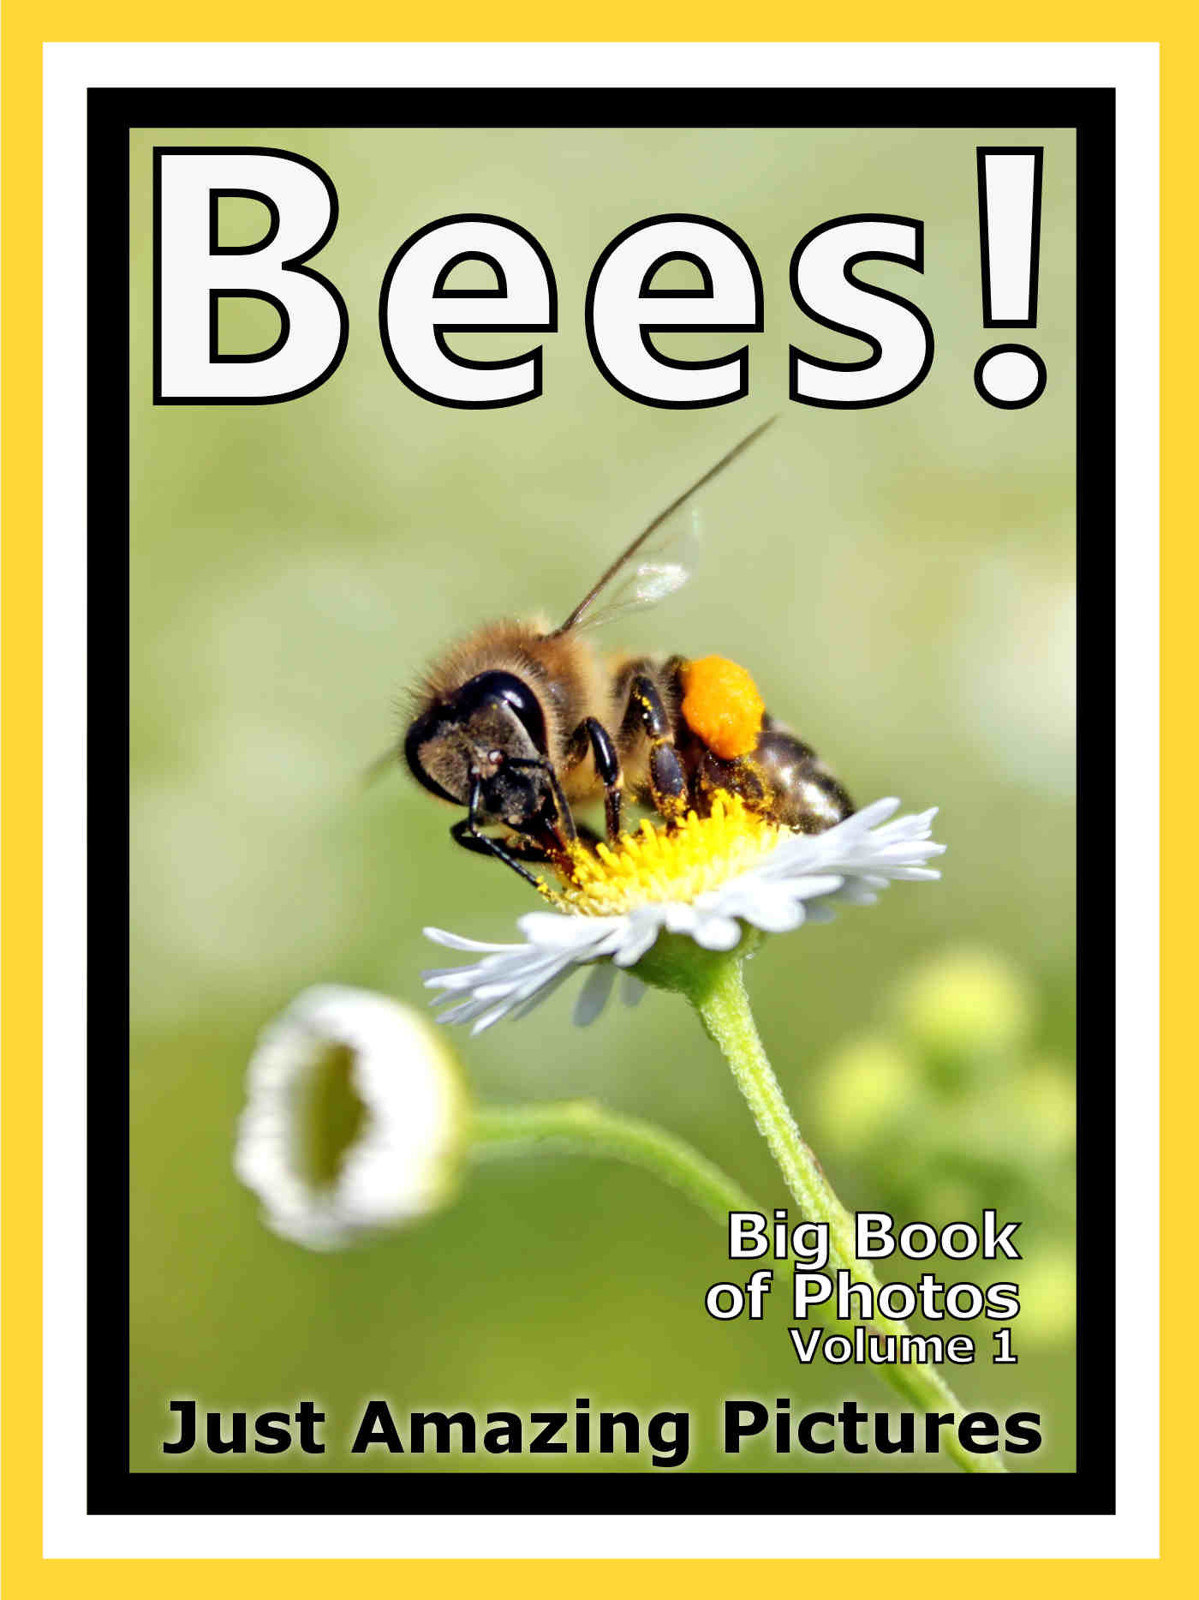 Just Bee Photos! Big Book of Photographs & Pictures of Bees, Vol. 1